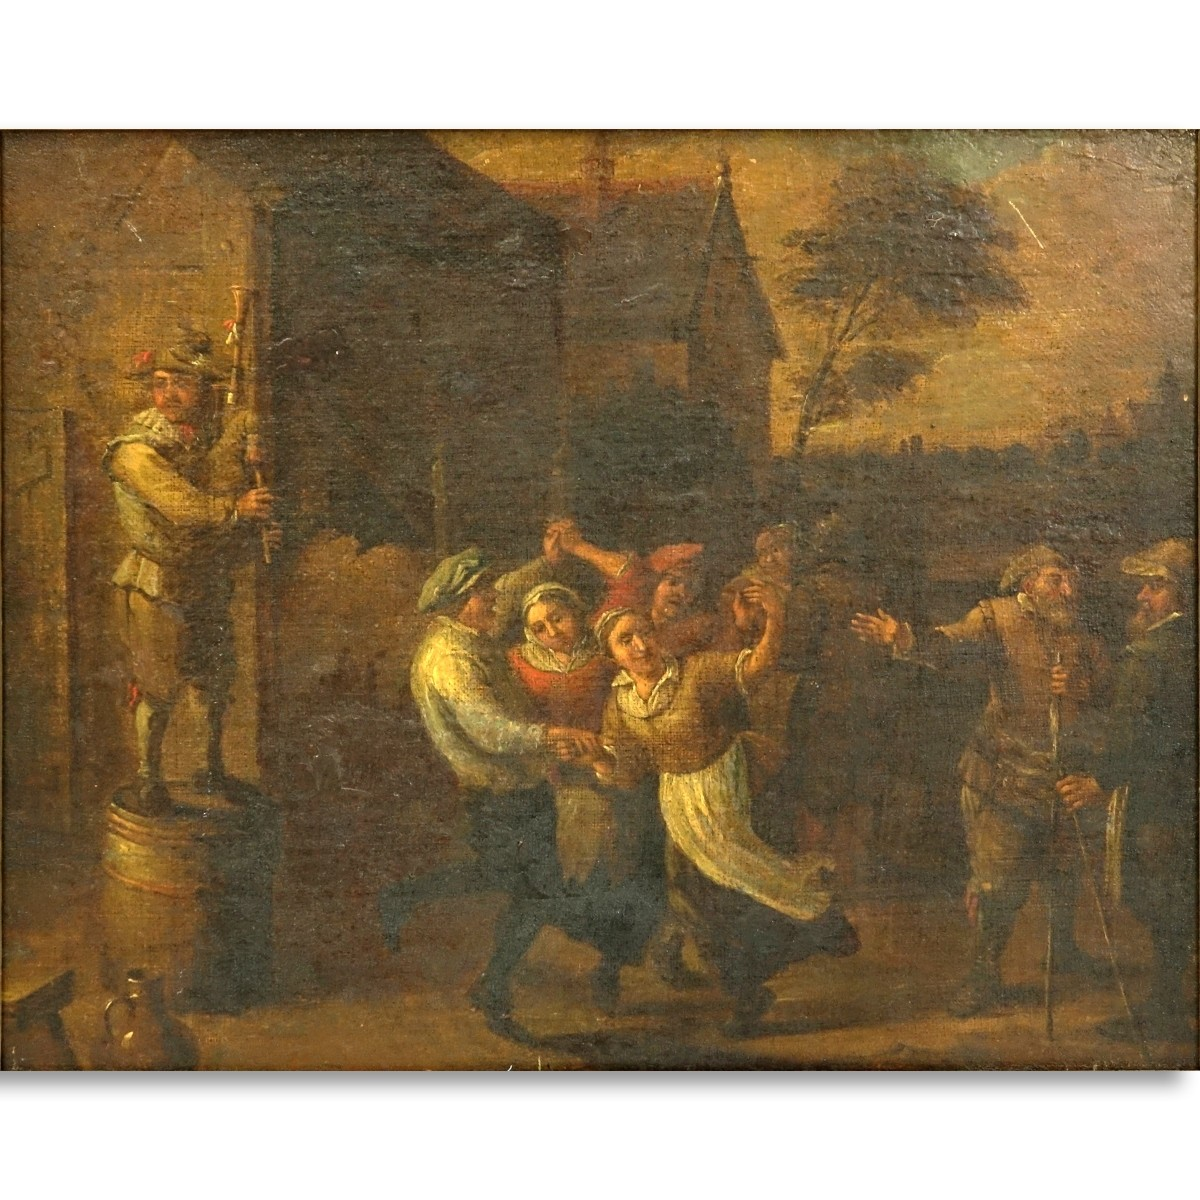 Attributed: David Teniers (1610 - 1690) O/C